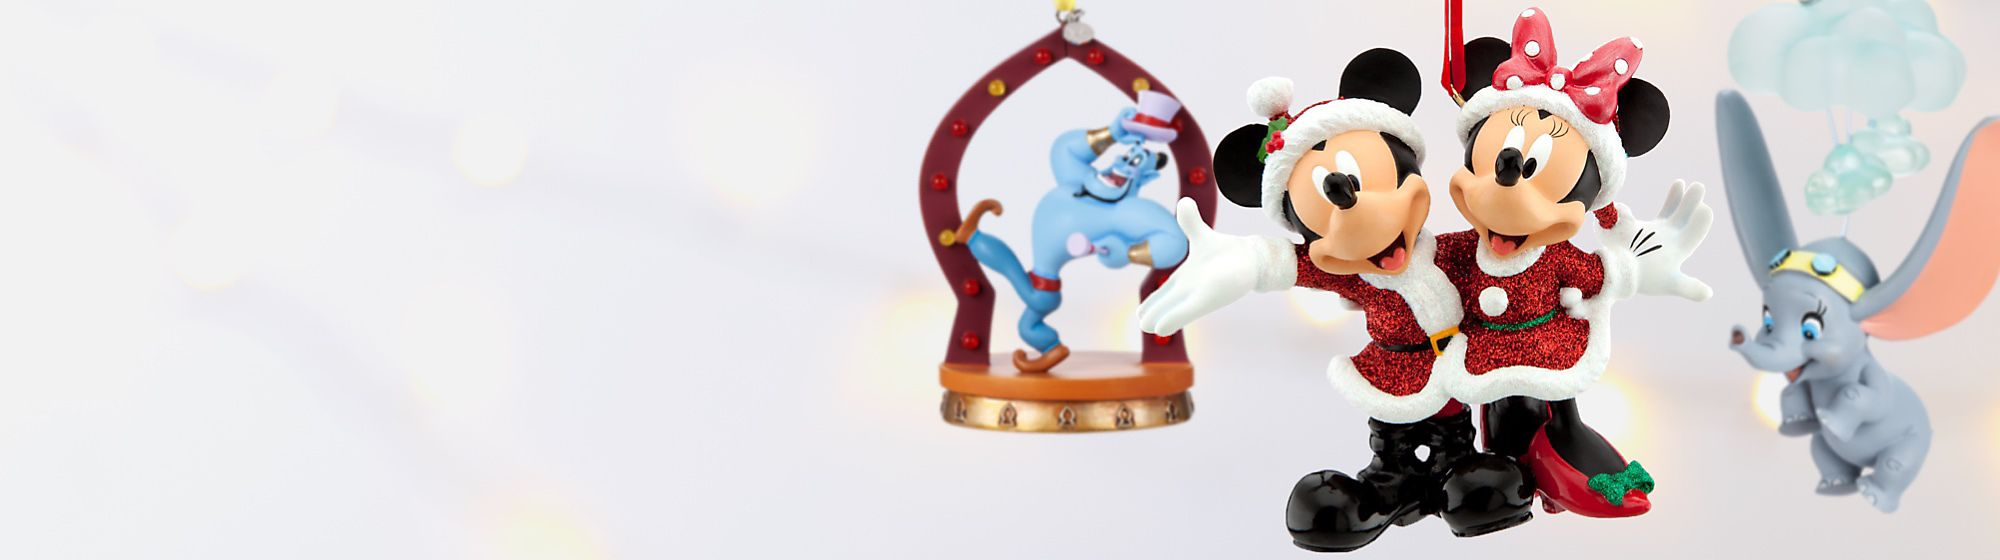 Holiday Cheer Starts Here Get a head start with fa-la-la-lots of ornaments and more SHOP ALL